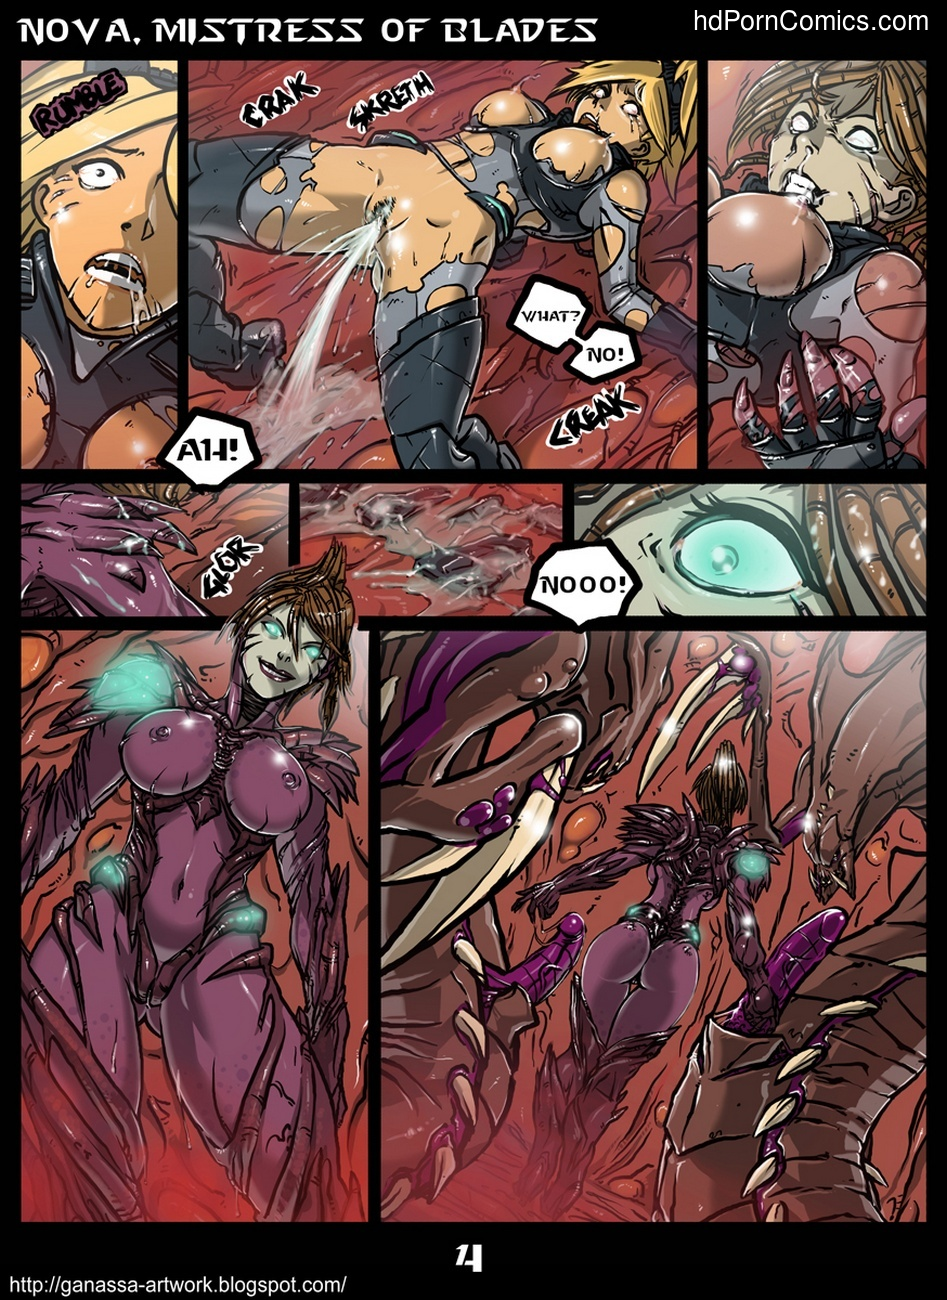 Nova, Mistress Of Blades 5 free sex comic